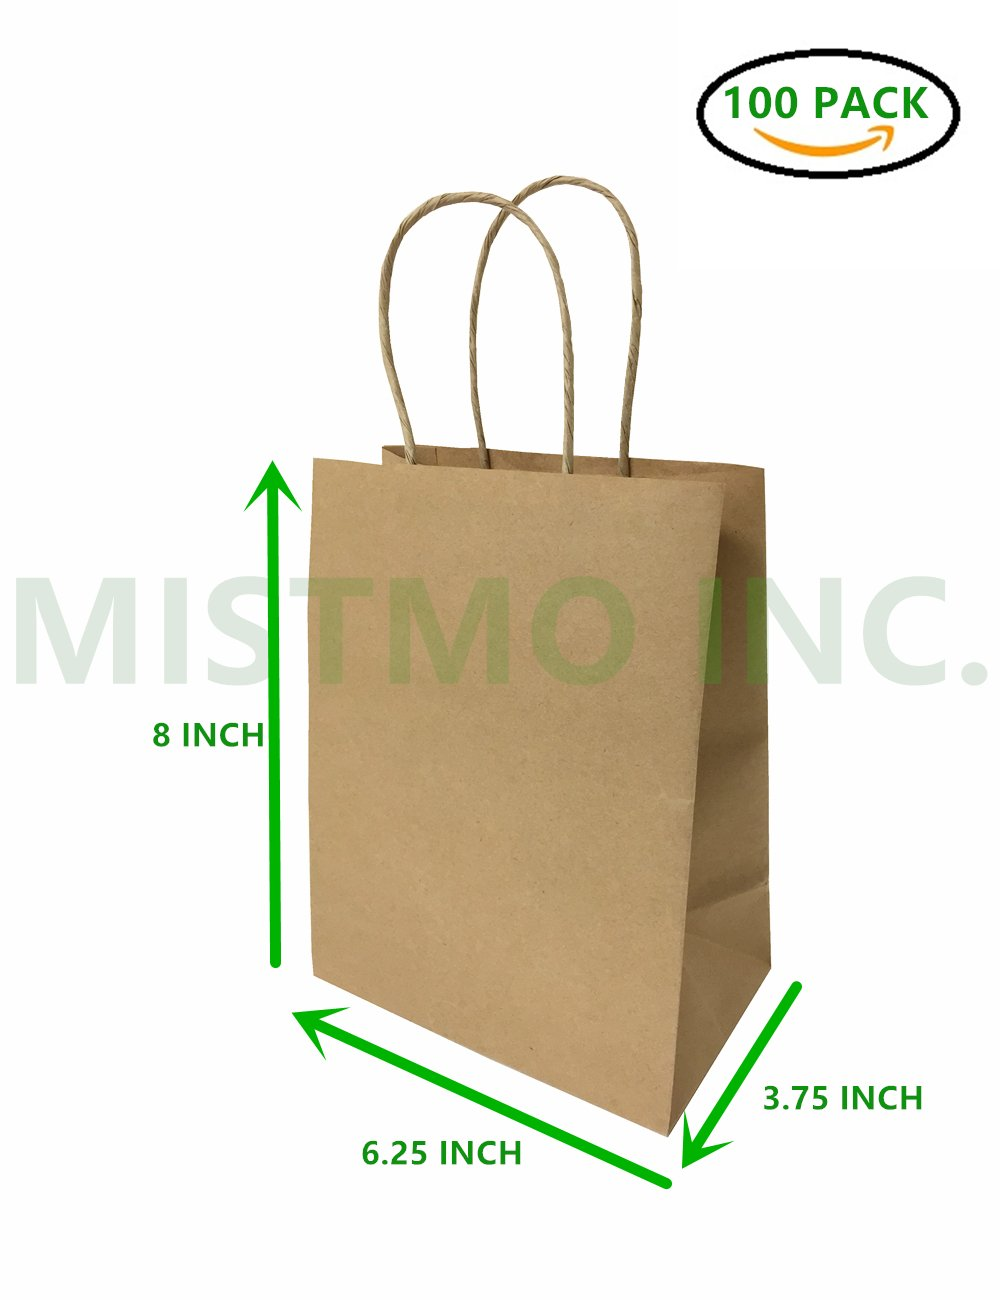 Mistmo 6.25''X3.75''X8'' Inch Kraft Paper Bags with Handles, Self-Standing Reusable Gift & Shopping Bags, Pack of 100PC, Brown Bags